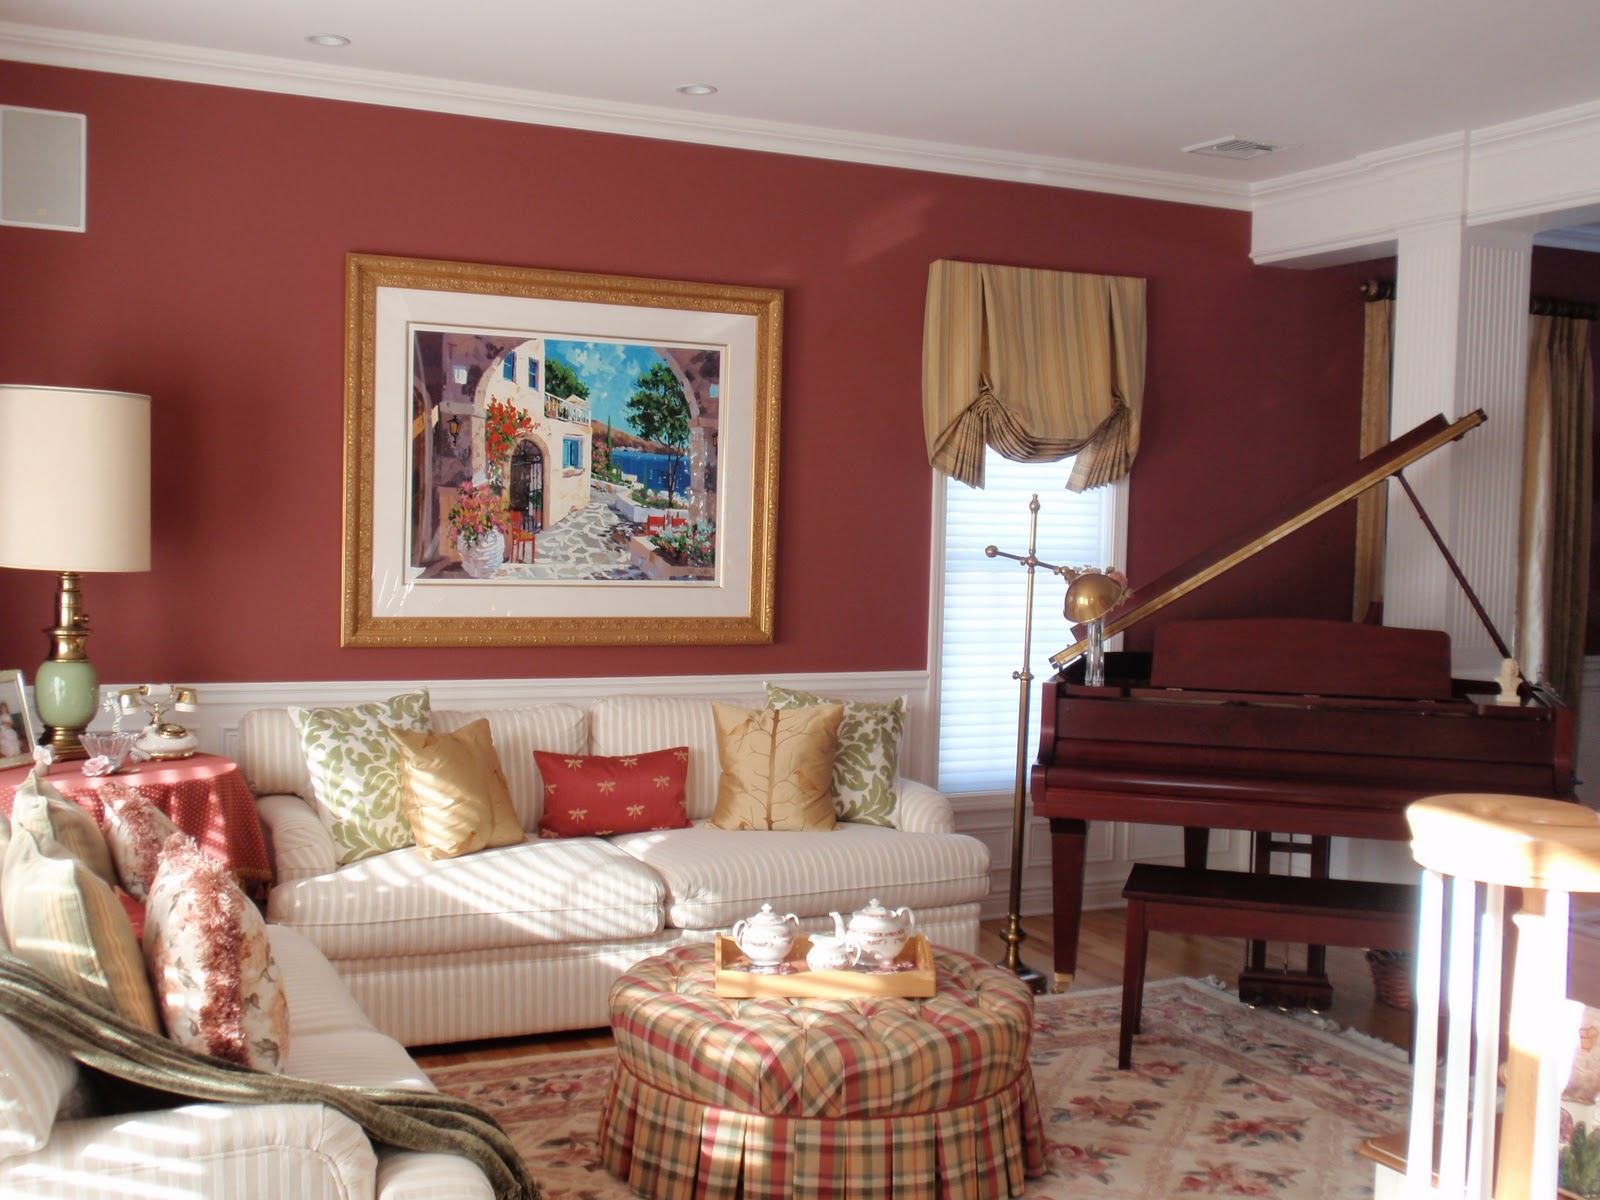 Vintage living room with striped sectional sofa.  Source: PrinceGeorges.com